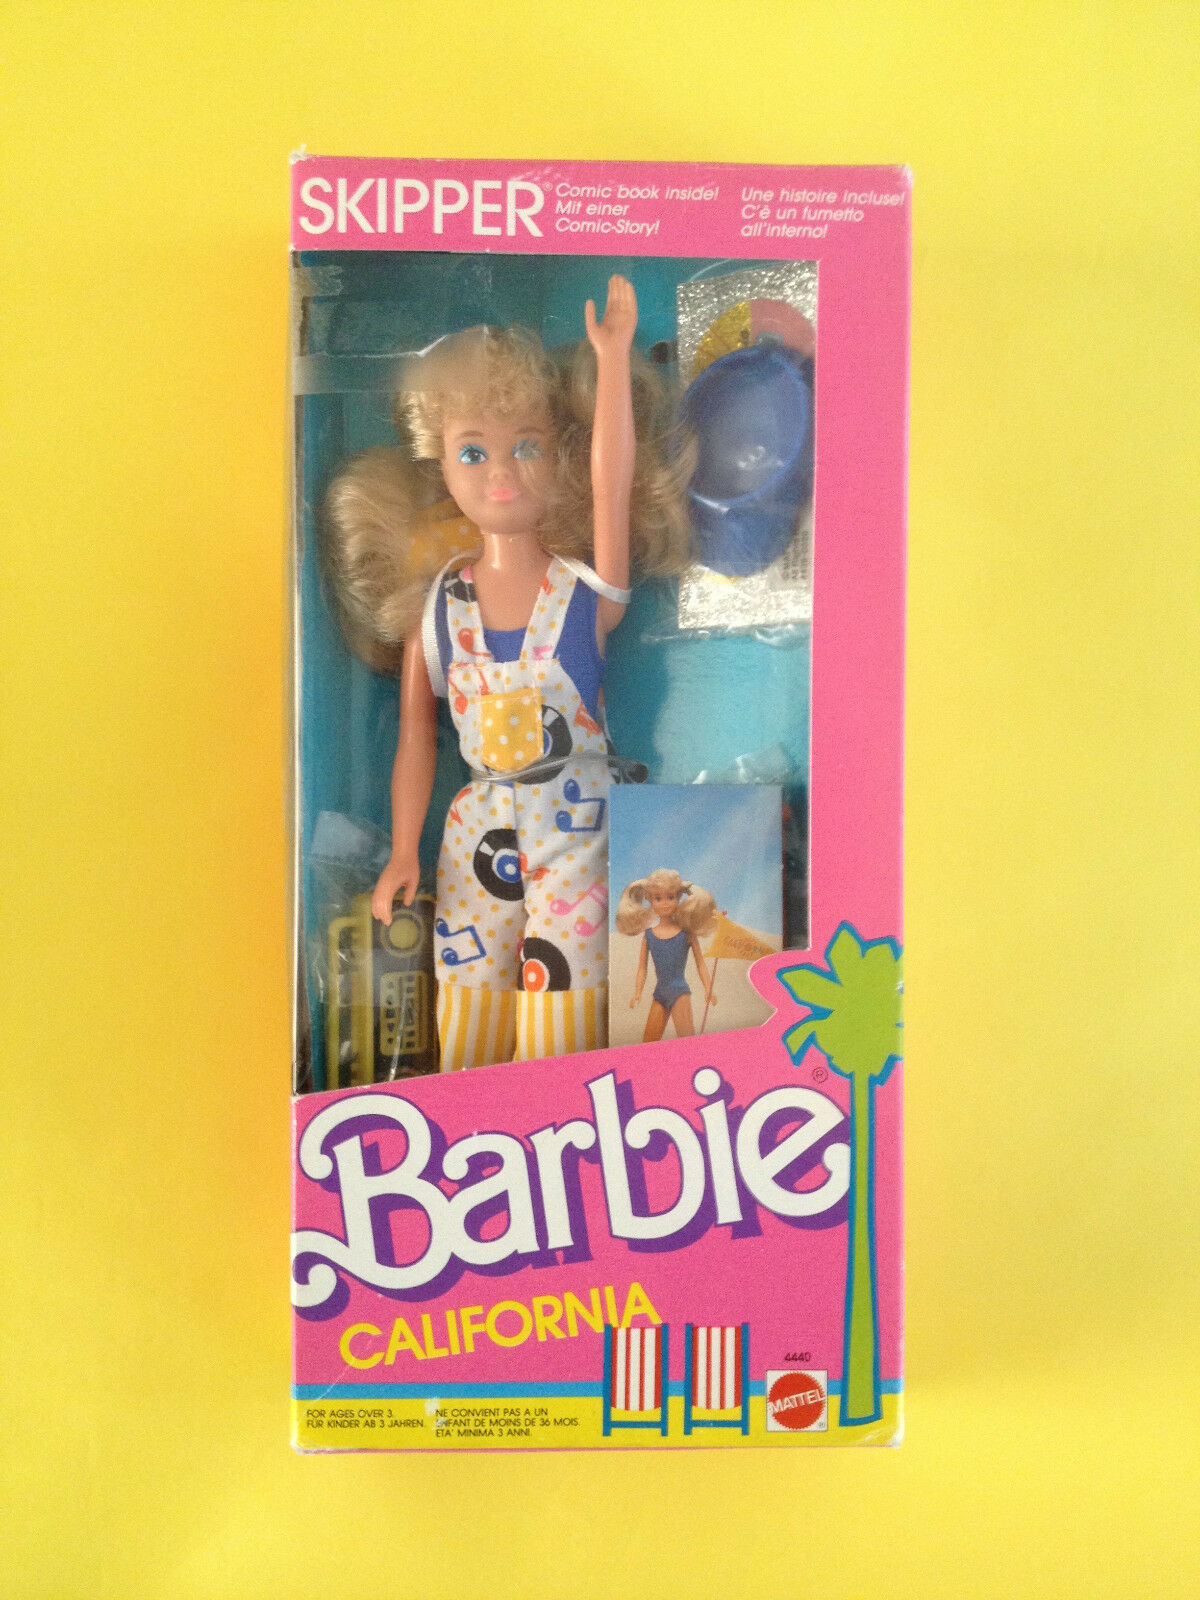 BARBIE EUROPEAN MARKET CALIFORNIA DREAM  SKIPPER NRFB 1986 VHTF  l'intera rete più bassa